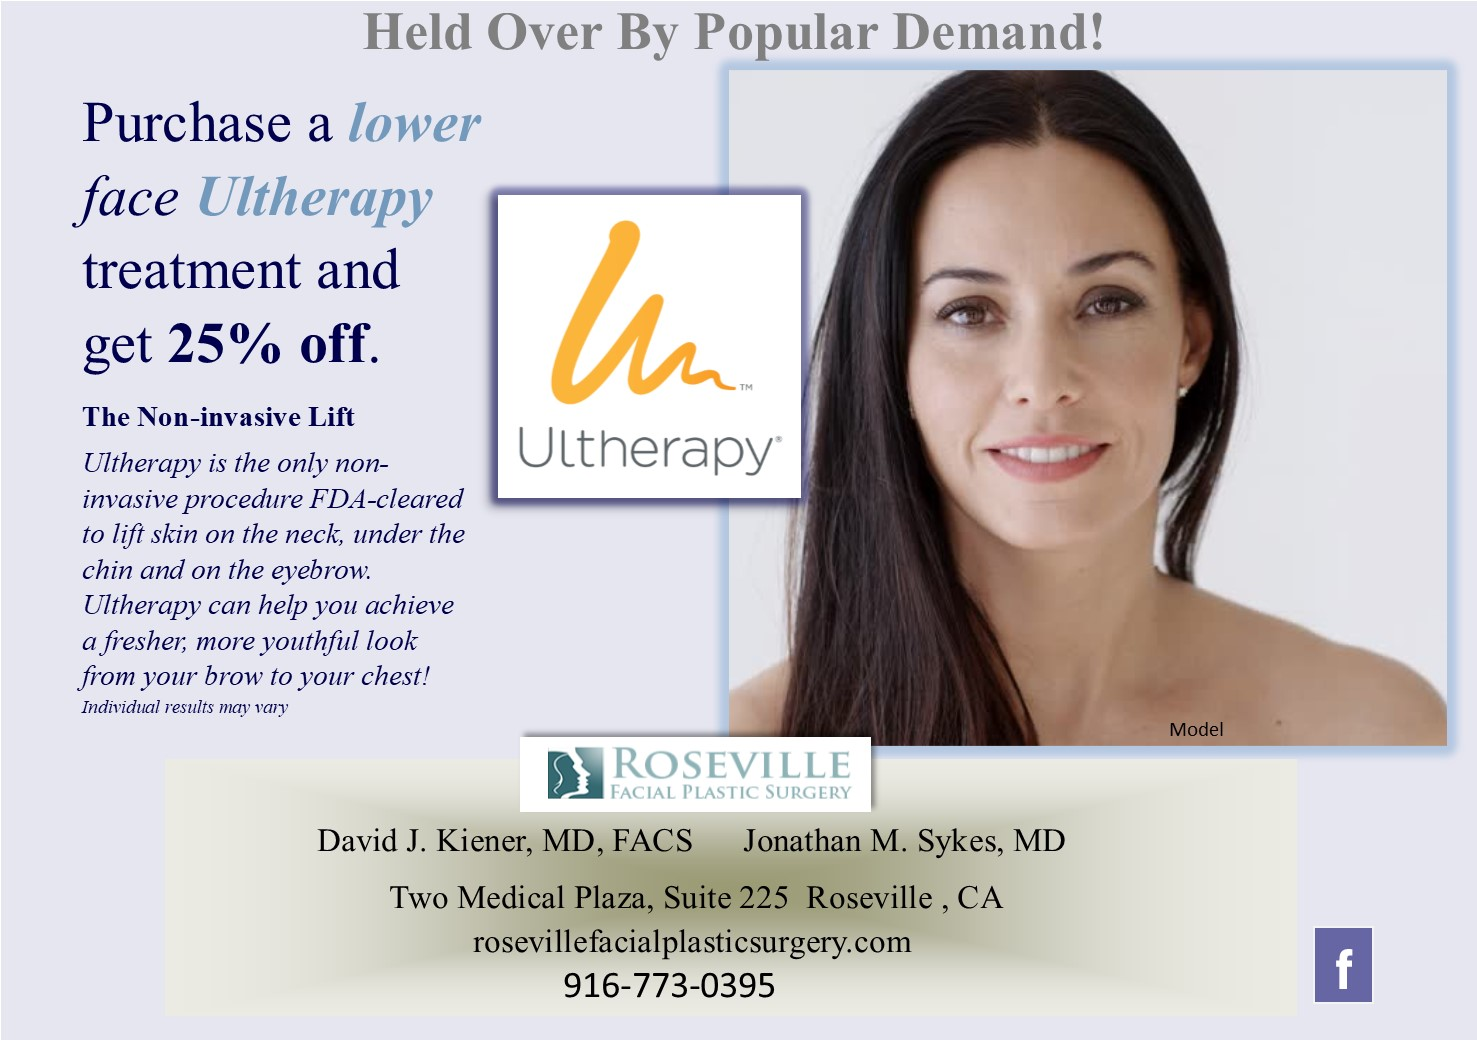 Roseville Facial Plastic Surgery Ultherapy Special